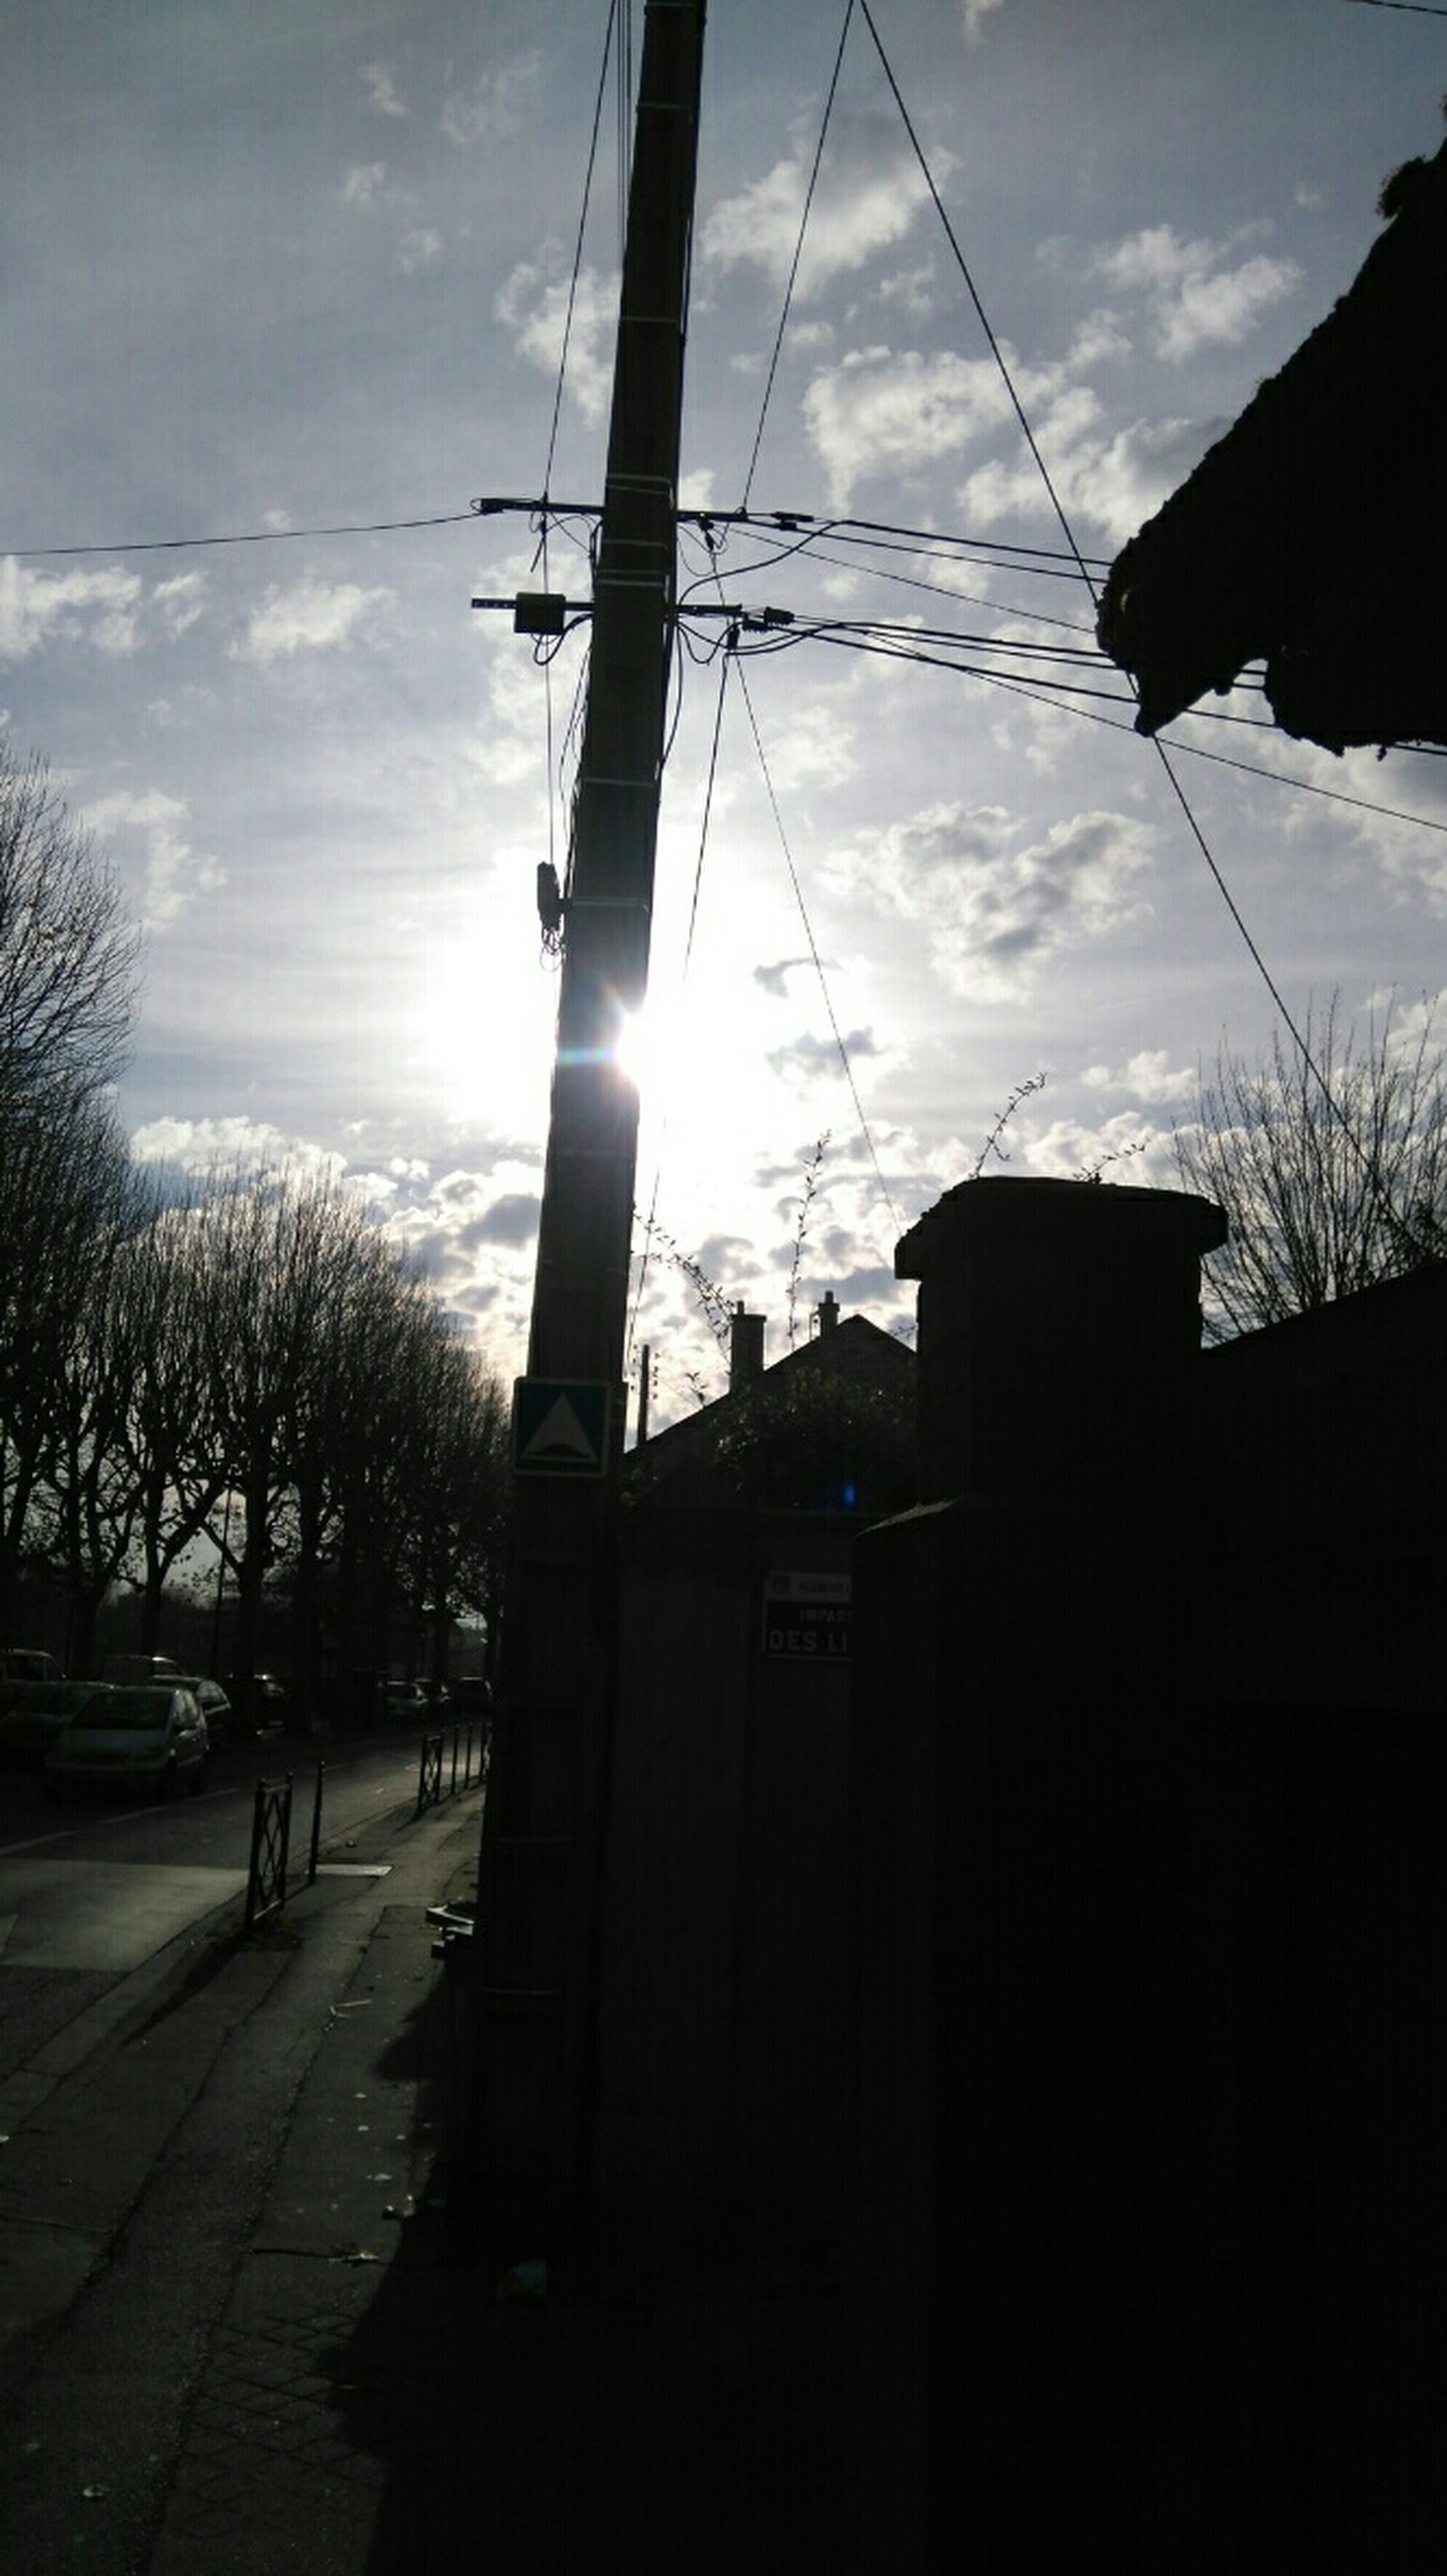 sky, silhouette, power line, electricity pylon, built structure, building exterior, architecture, electricity, cloud - sky, tree, low angle view, fuel and power generation, power supply, cloud, cable, street light, sunlight, technology, power cable, cloudy